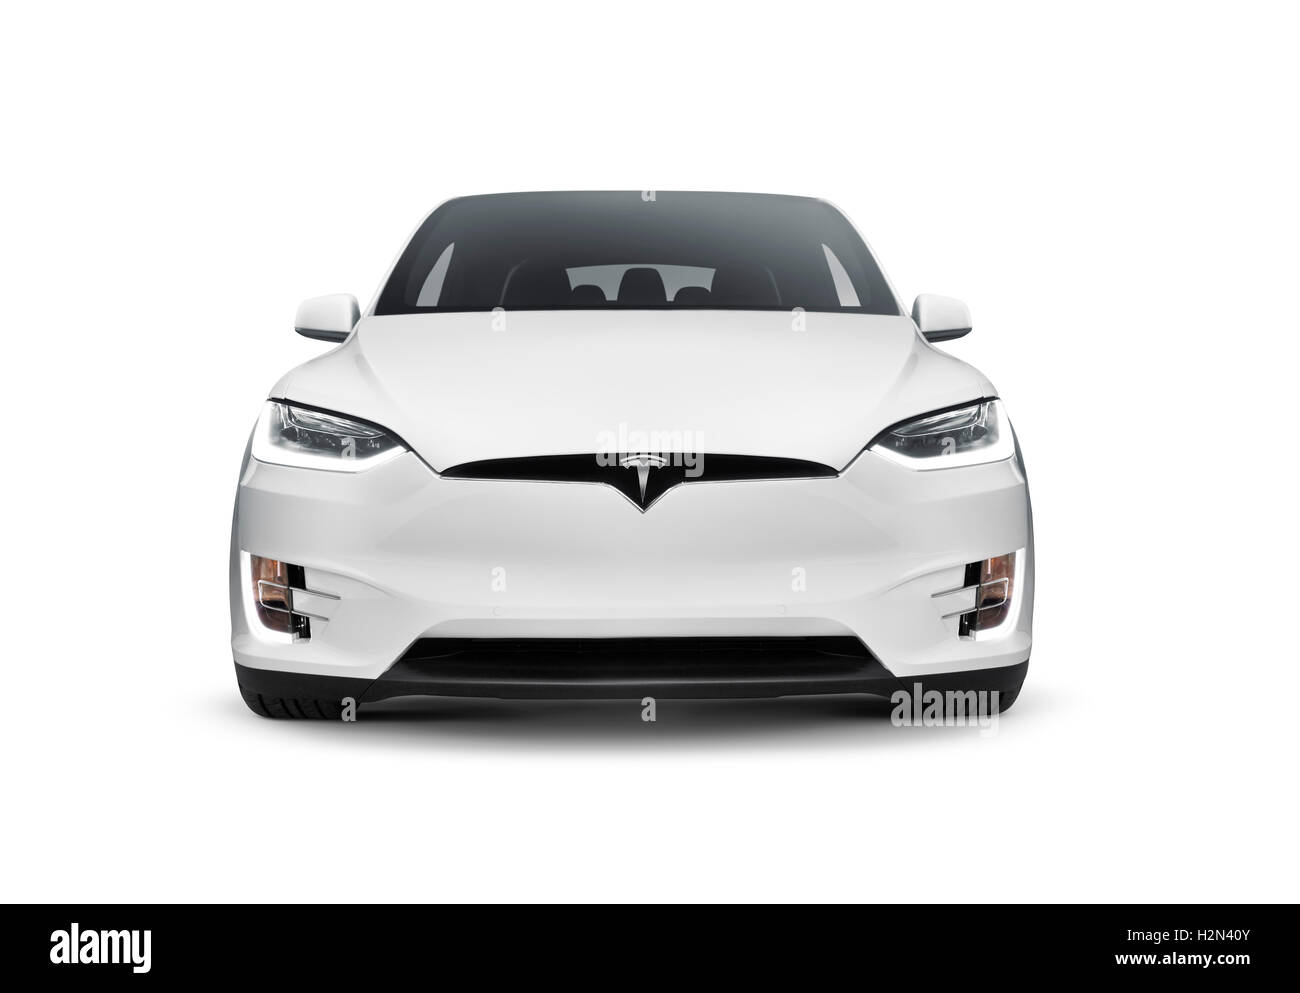 New Tesla Roadster 0 60 1 9 Seconds 620 Mile Range 200000 likewise Tesla Model S Parking Sensors Rear Camera Folding Mirrors furthermore Is additionally 81648 additionally Will I Am Ruins Another Perfectly Fine Car. on tesla model 3 front view